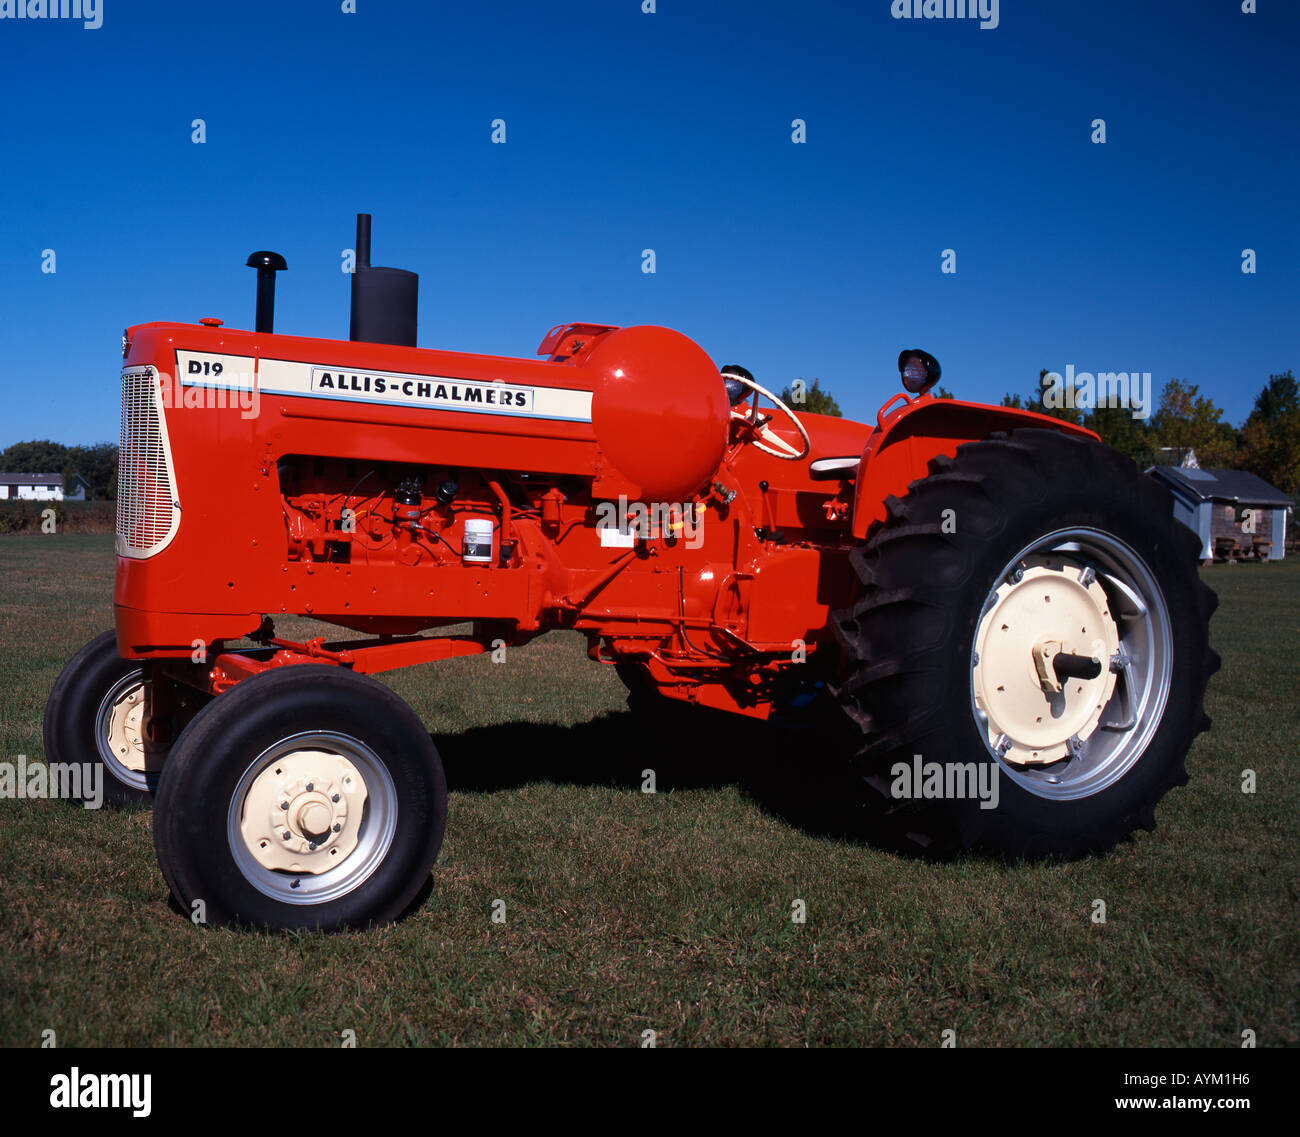 1963 Allis-Chalmers D19 Turbo tractor Stock Photo: 9791701